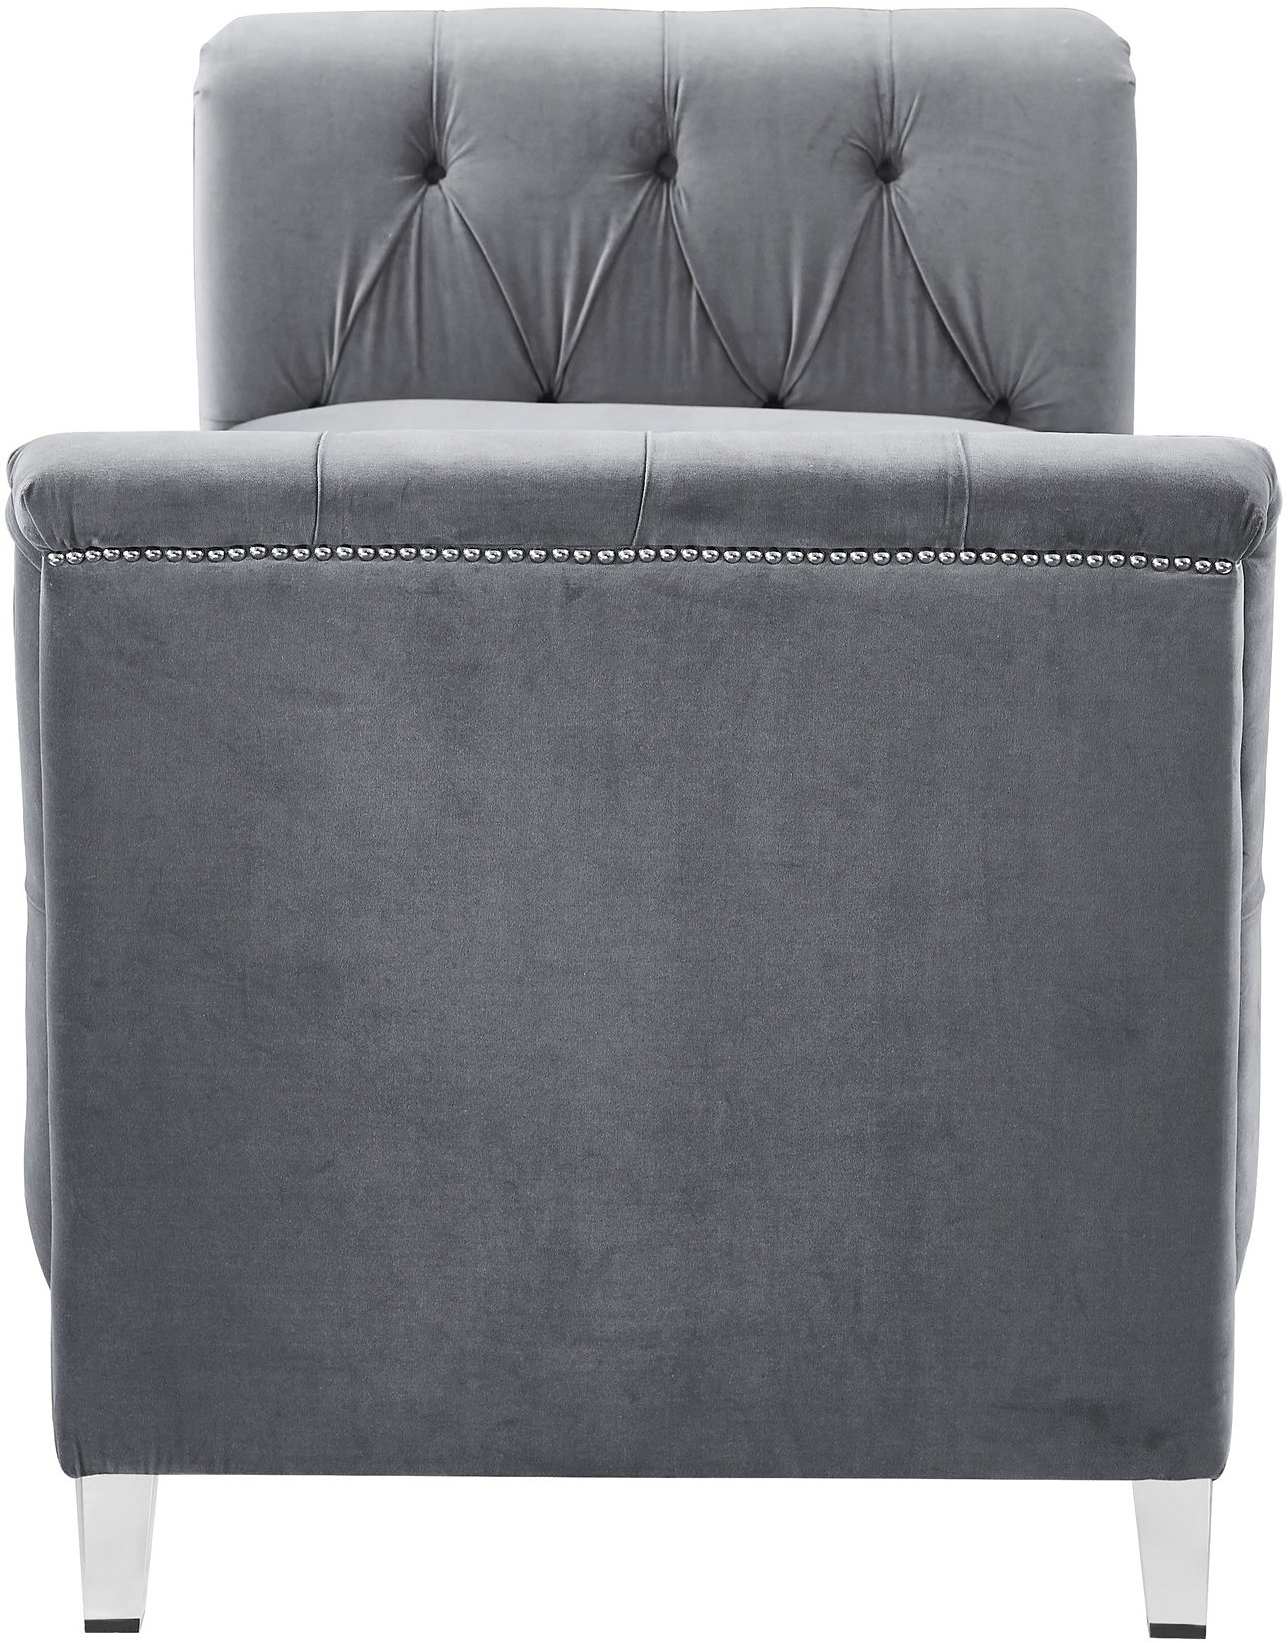 velvet grey presidio bench daybed